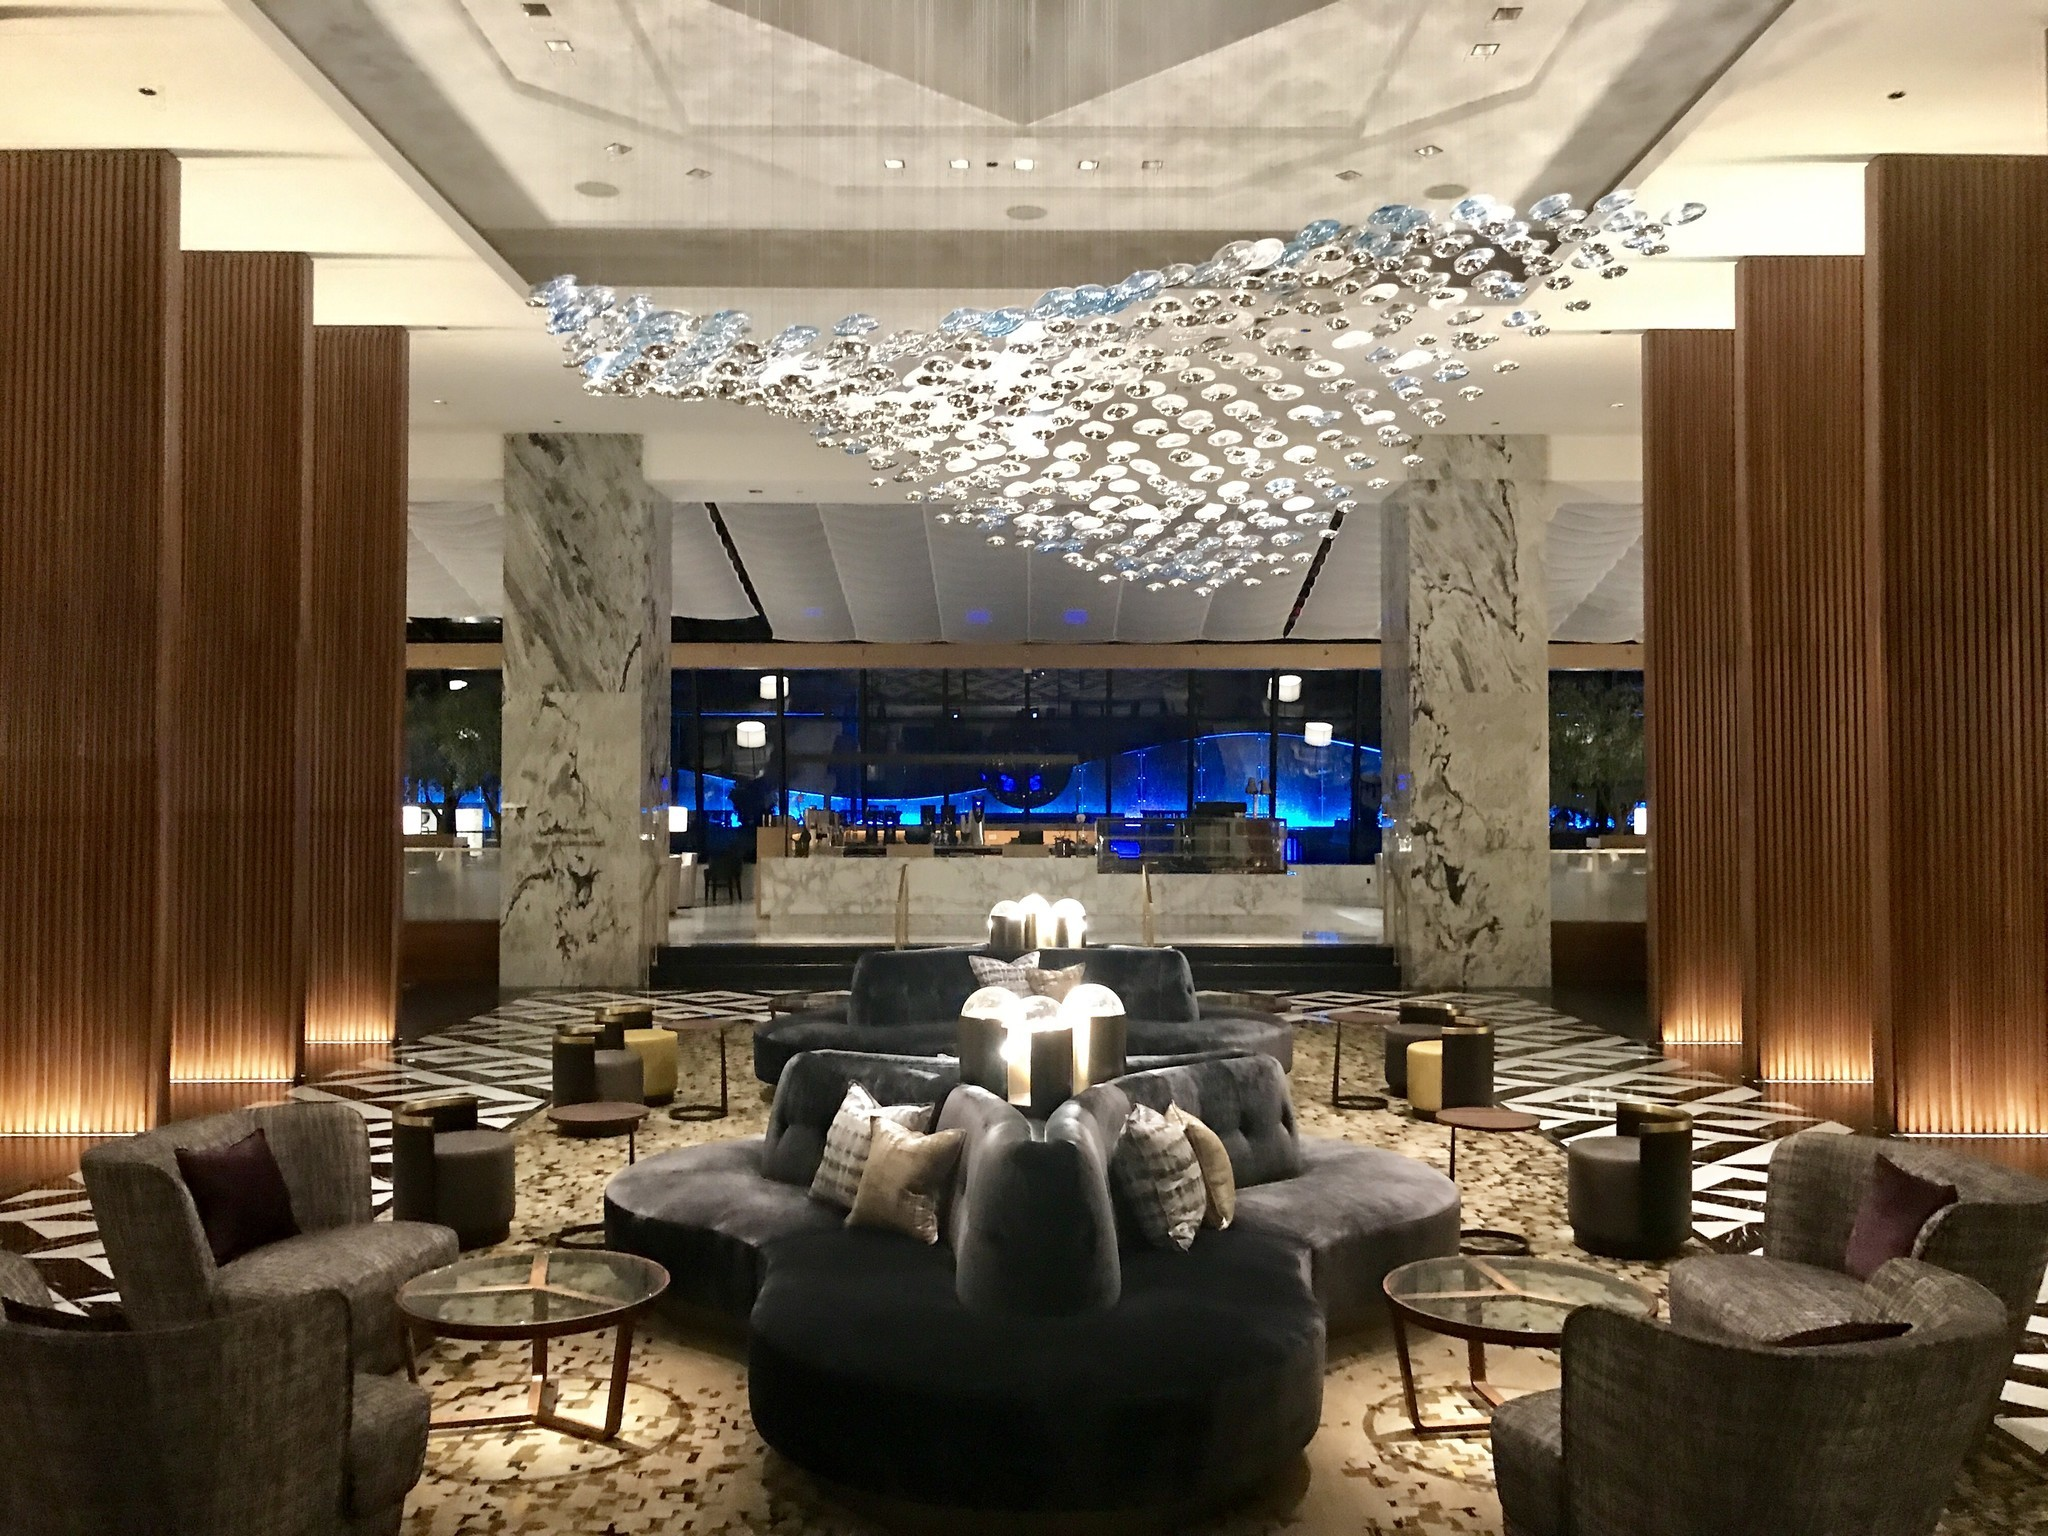 Get a first look at the u0027newu0027 Ritz-Carlton Chicago $100 million later - Chicago Tribune & Get a first look at the u0027newu0027 Ritz-Carlton Chicago $100 million ... azcodes.com